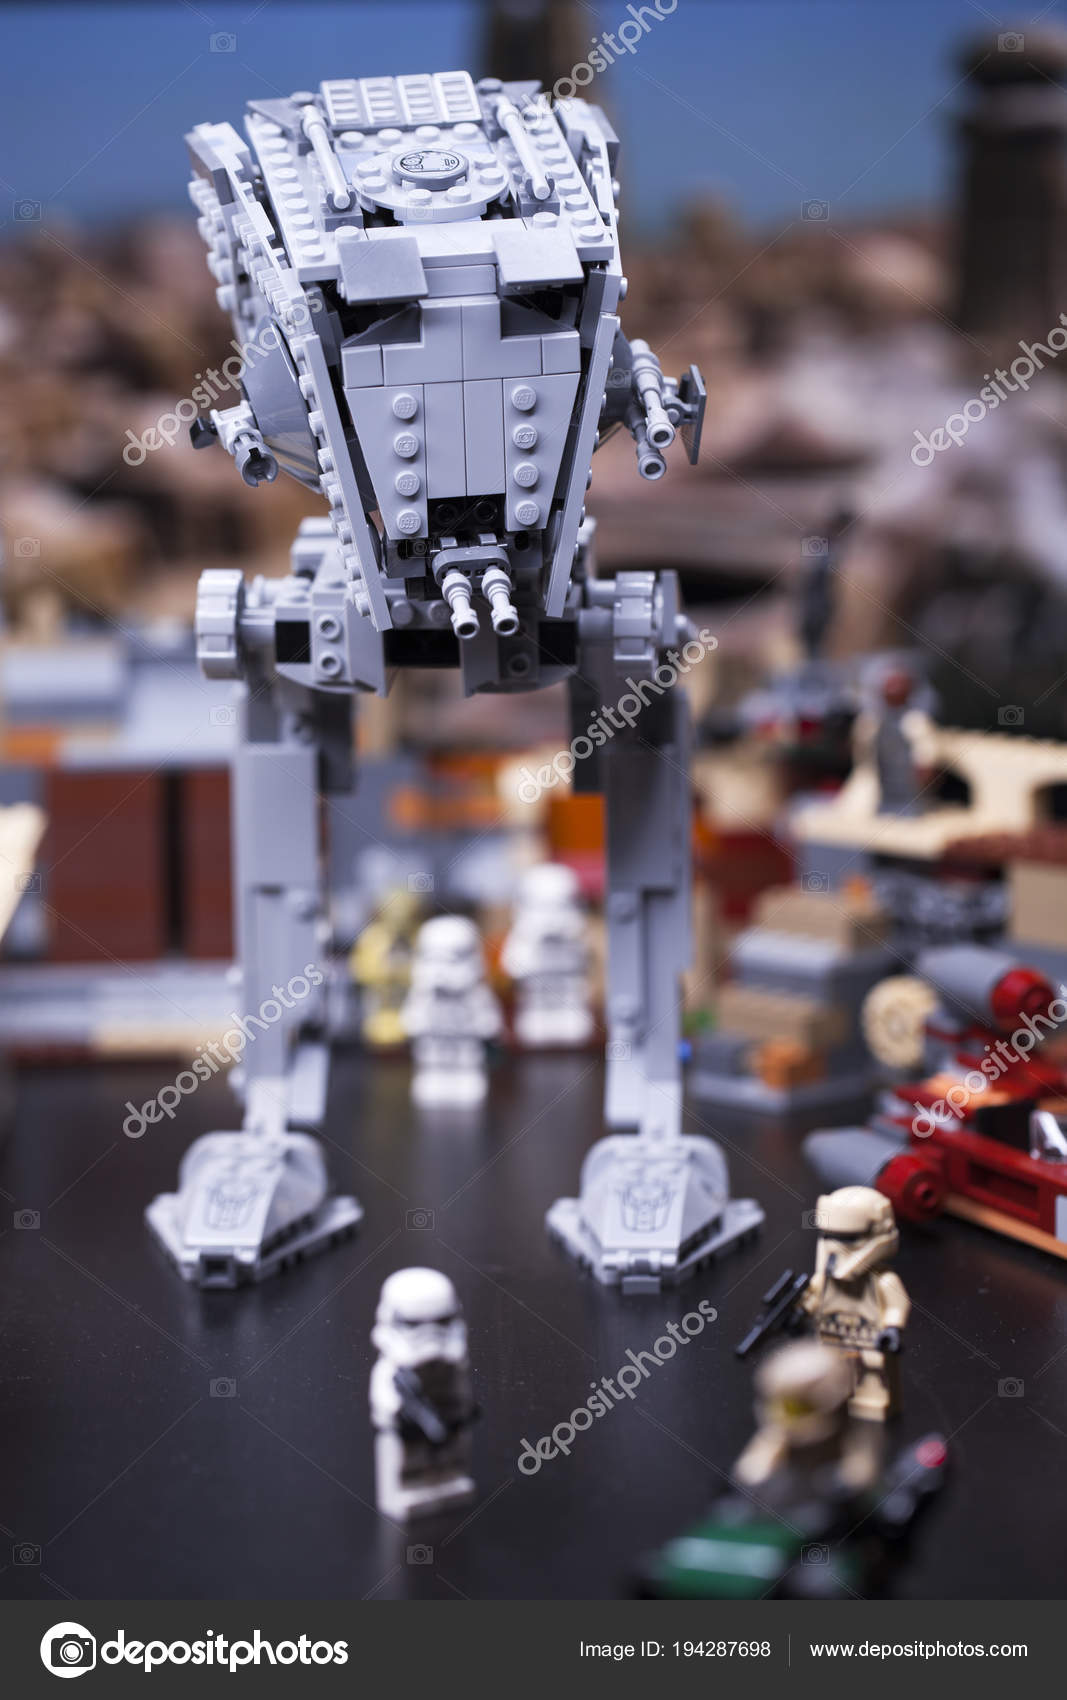 RUSSIA, April 12, 2018  Constructor Lego Star Wars  AT-ST